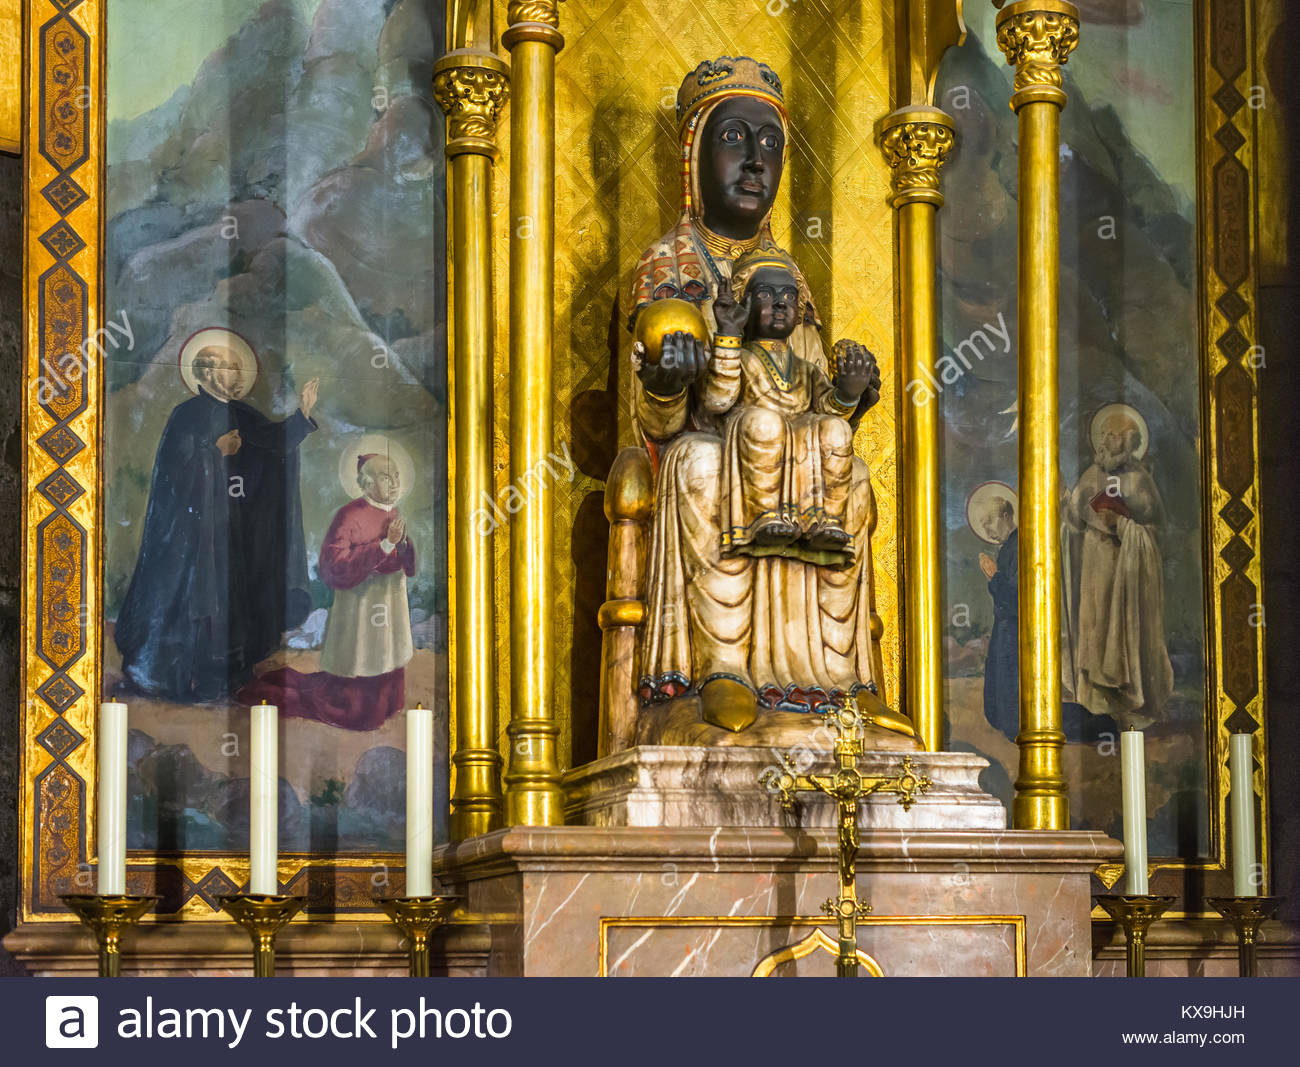 Statue of the Virgin Mary inside the Cathedral of the Holy Cross and Saint Eulalia in Barcelona, Catalonia, Spain. Stock Photo